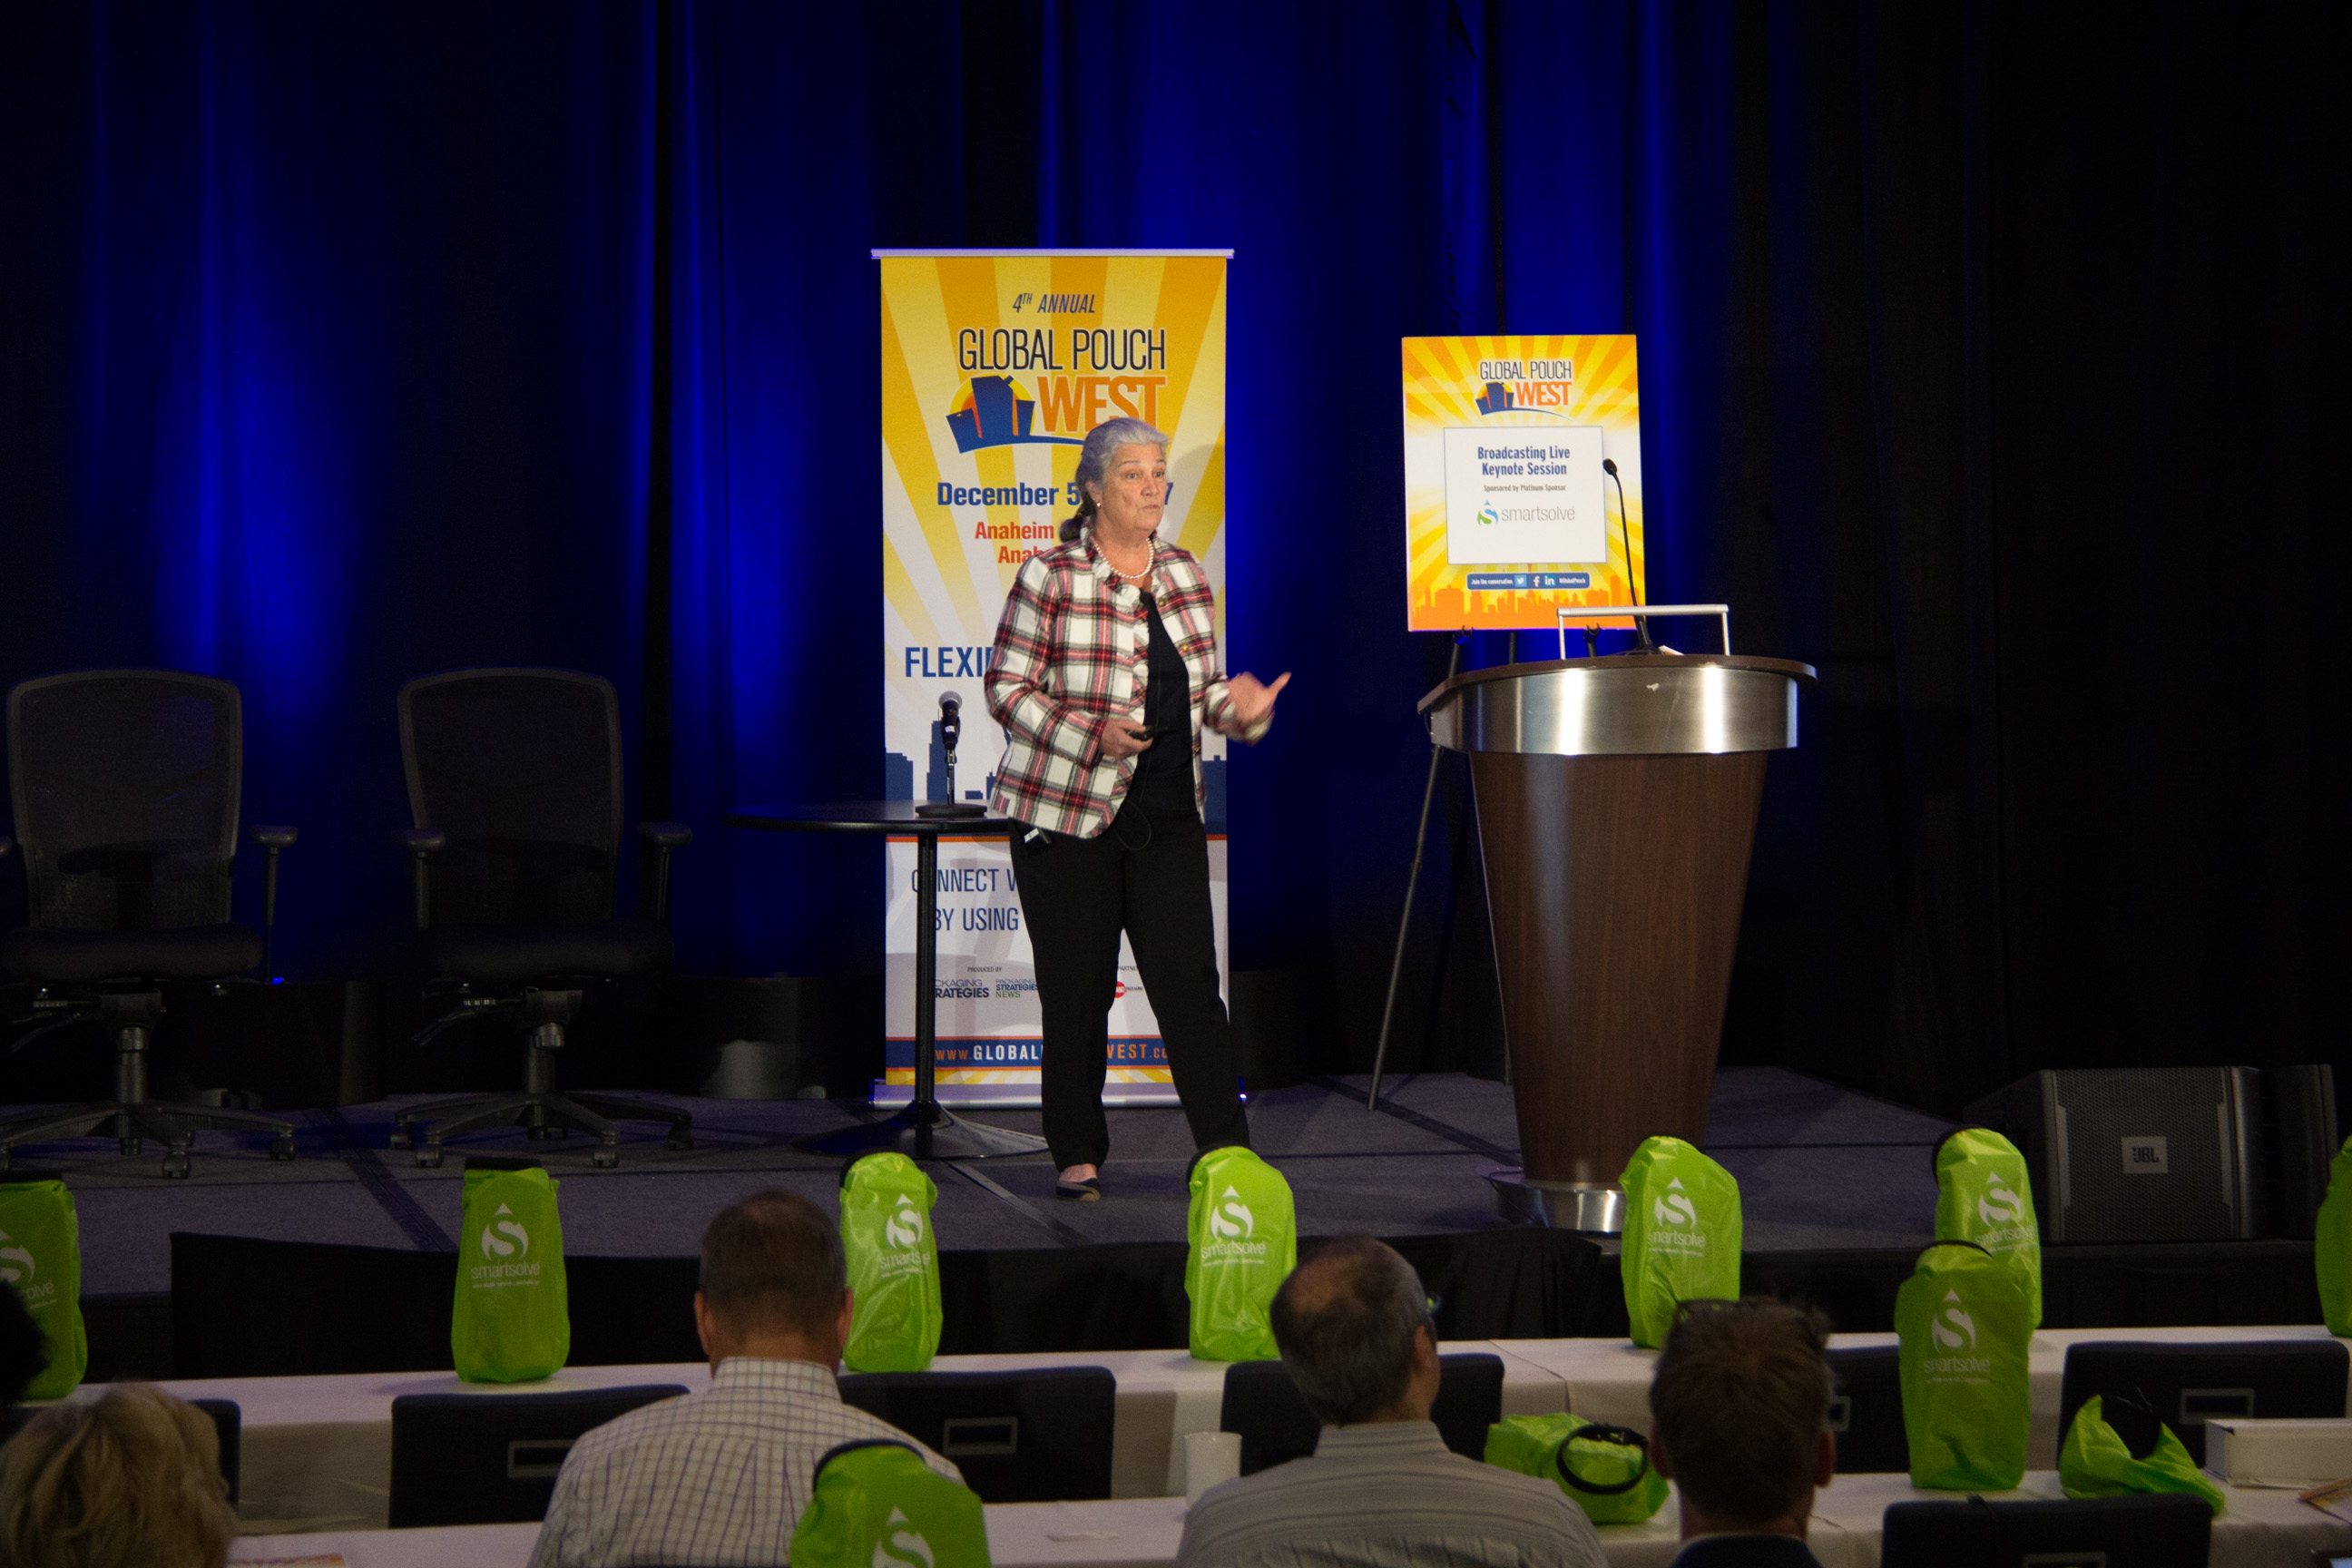 Nina-Goodrich-2017-keynote-speaker-and-executive-director-of-the-Sustainable-Packaging-Coalition-delivering-a-talk-on-packaging-sustainability.jpg